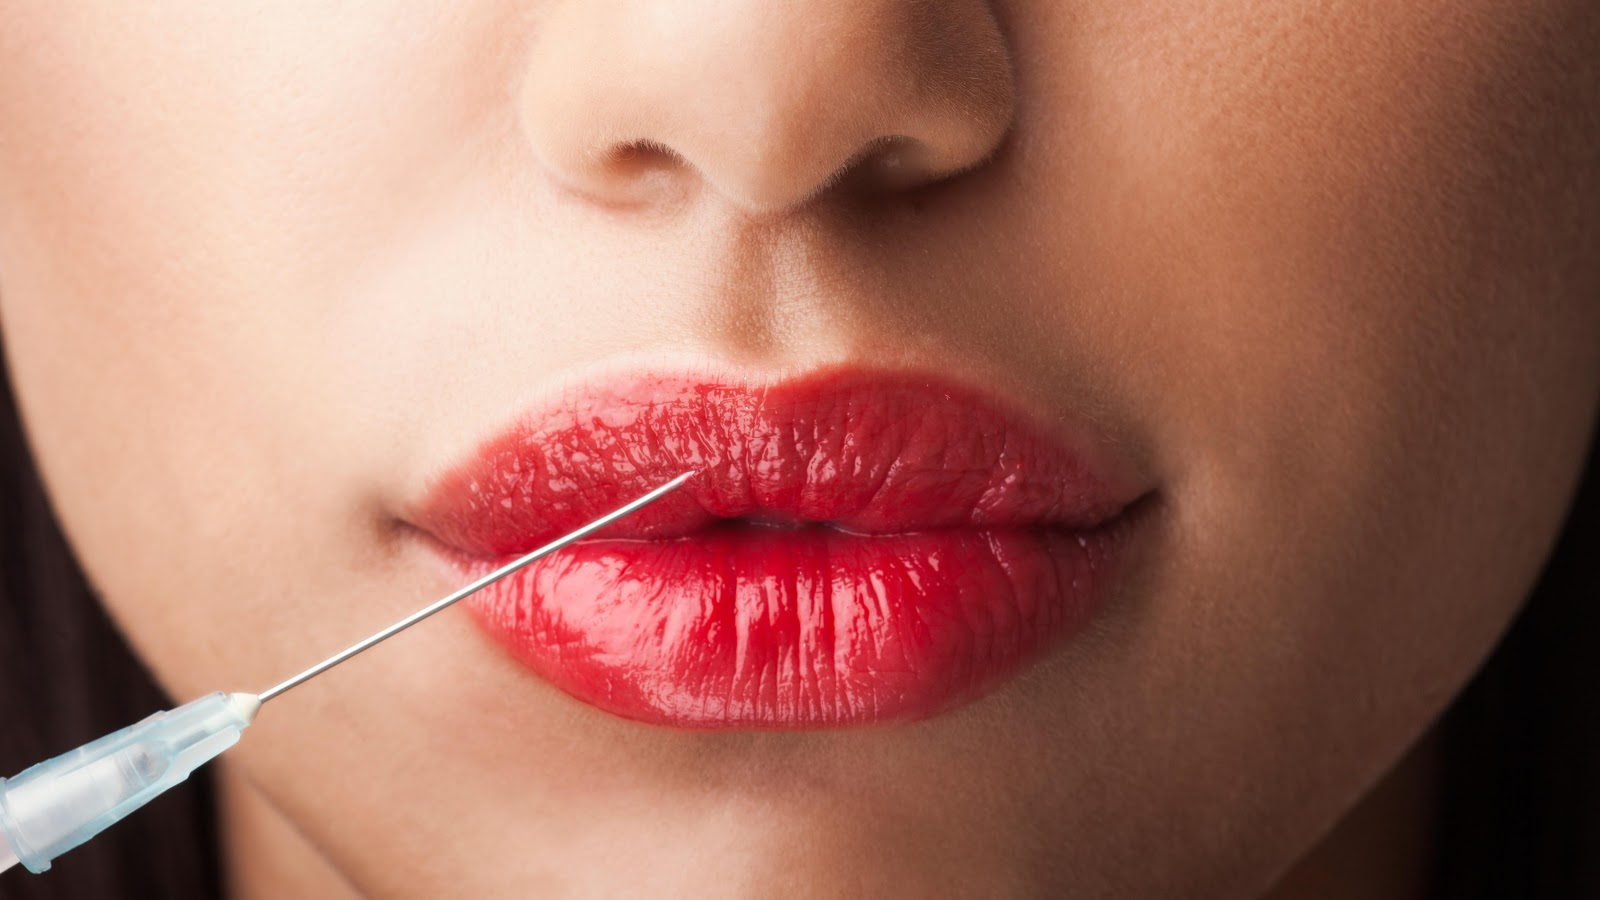 a woman sticking needle into her lips